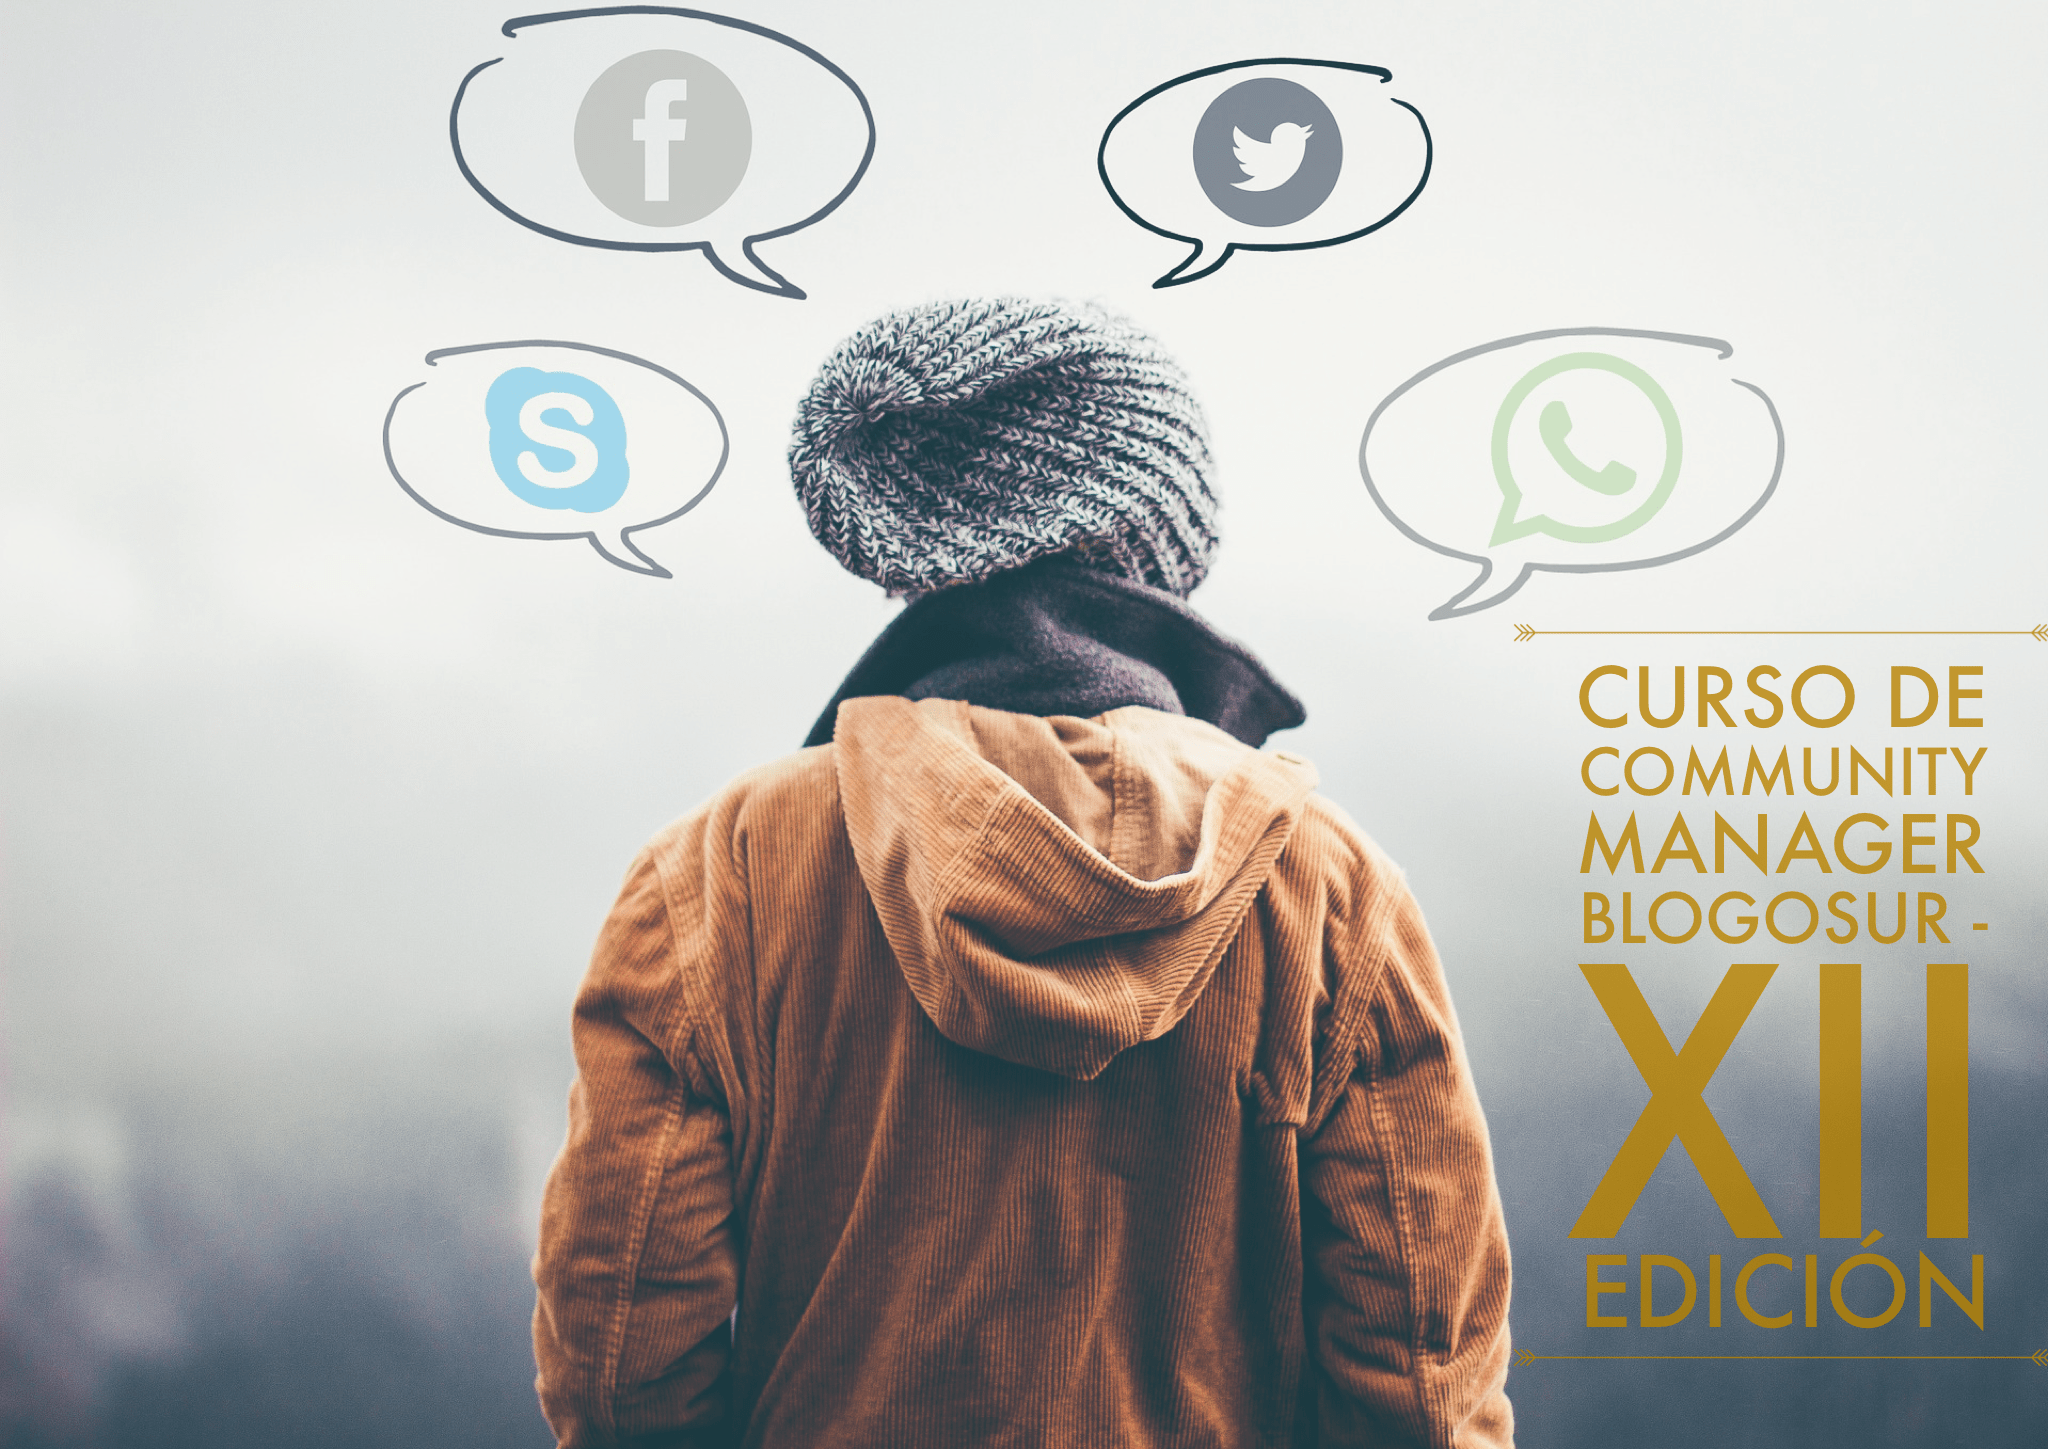 Curso de Community Manager de Blogosur